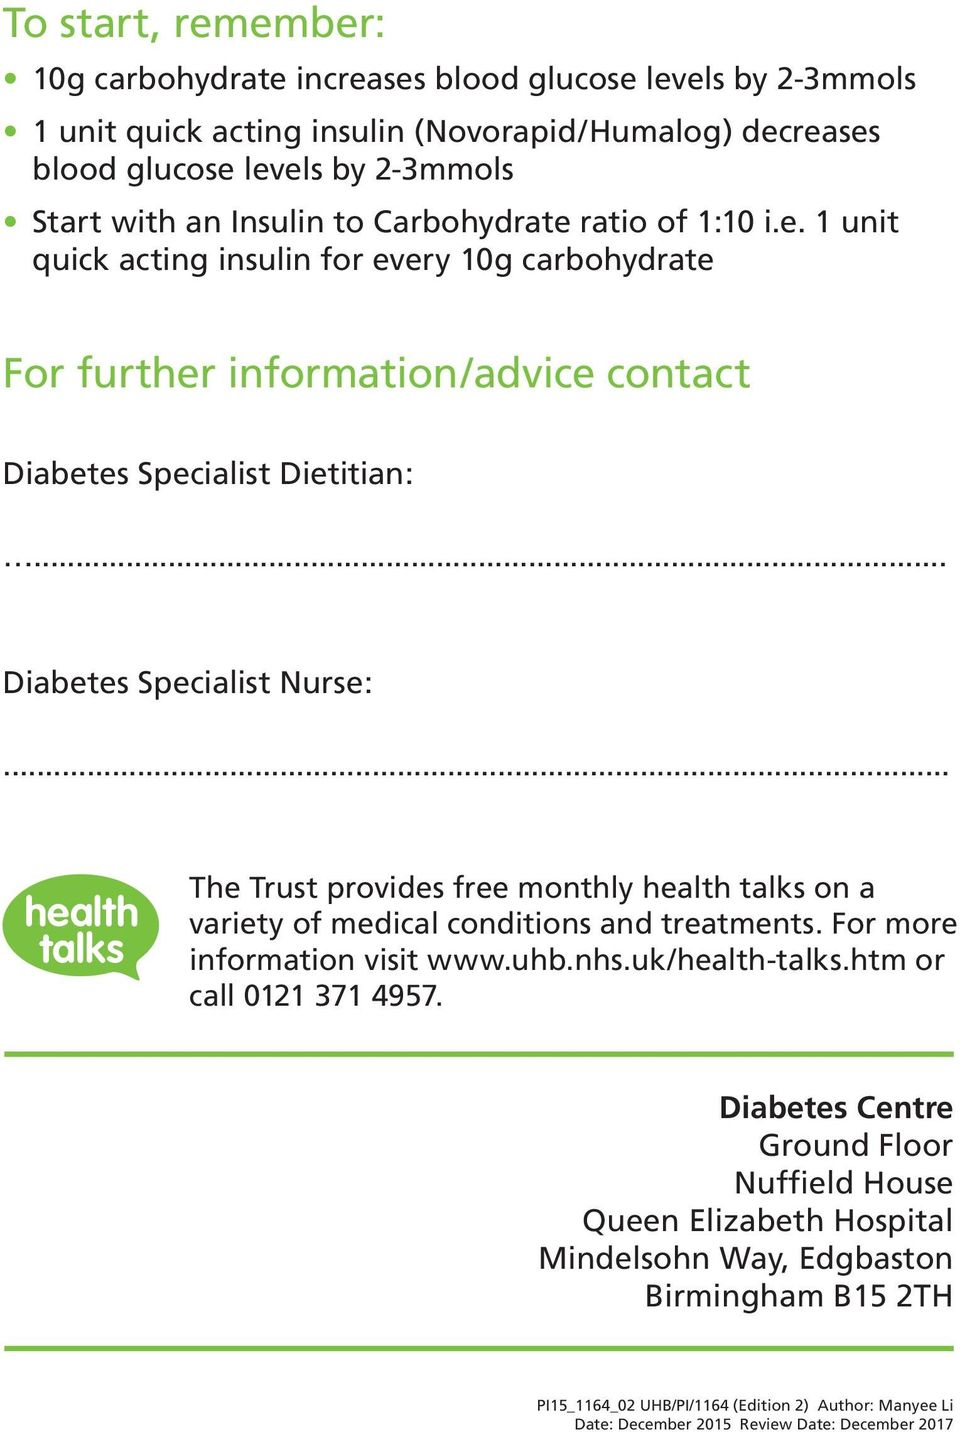 .. The Trust provides free monthly health talks on a variety of medical conditions and treatments. For more information visit www.uhb.nhs.uk/health-talks.htm or call 0121 371 4957.